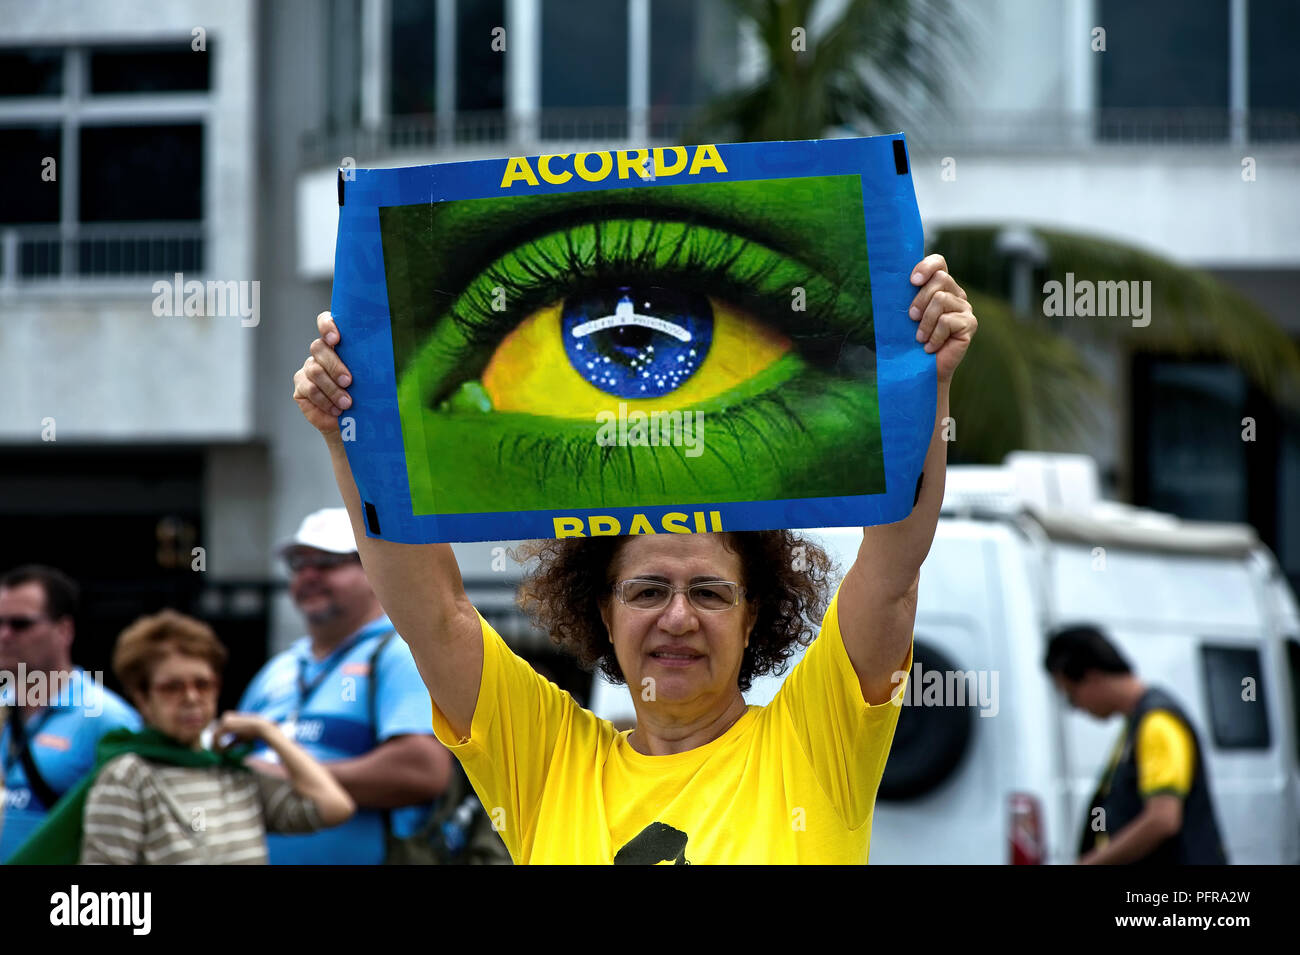 Copacabana, Rio de Janeiro – December 4, 2016: A protester holds a sign that says 'Wake up Brazil' in Portuguese during a march against corruption - Stock Image